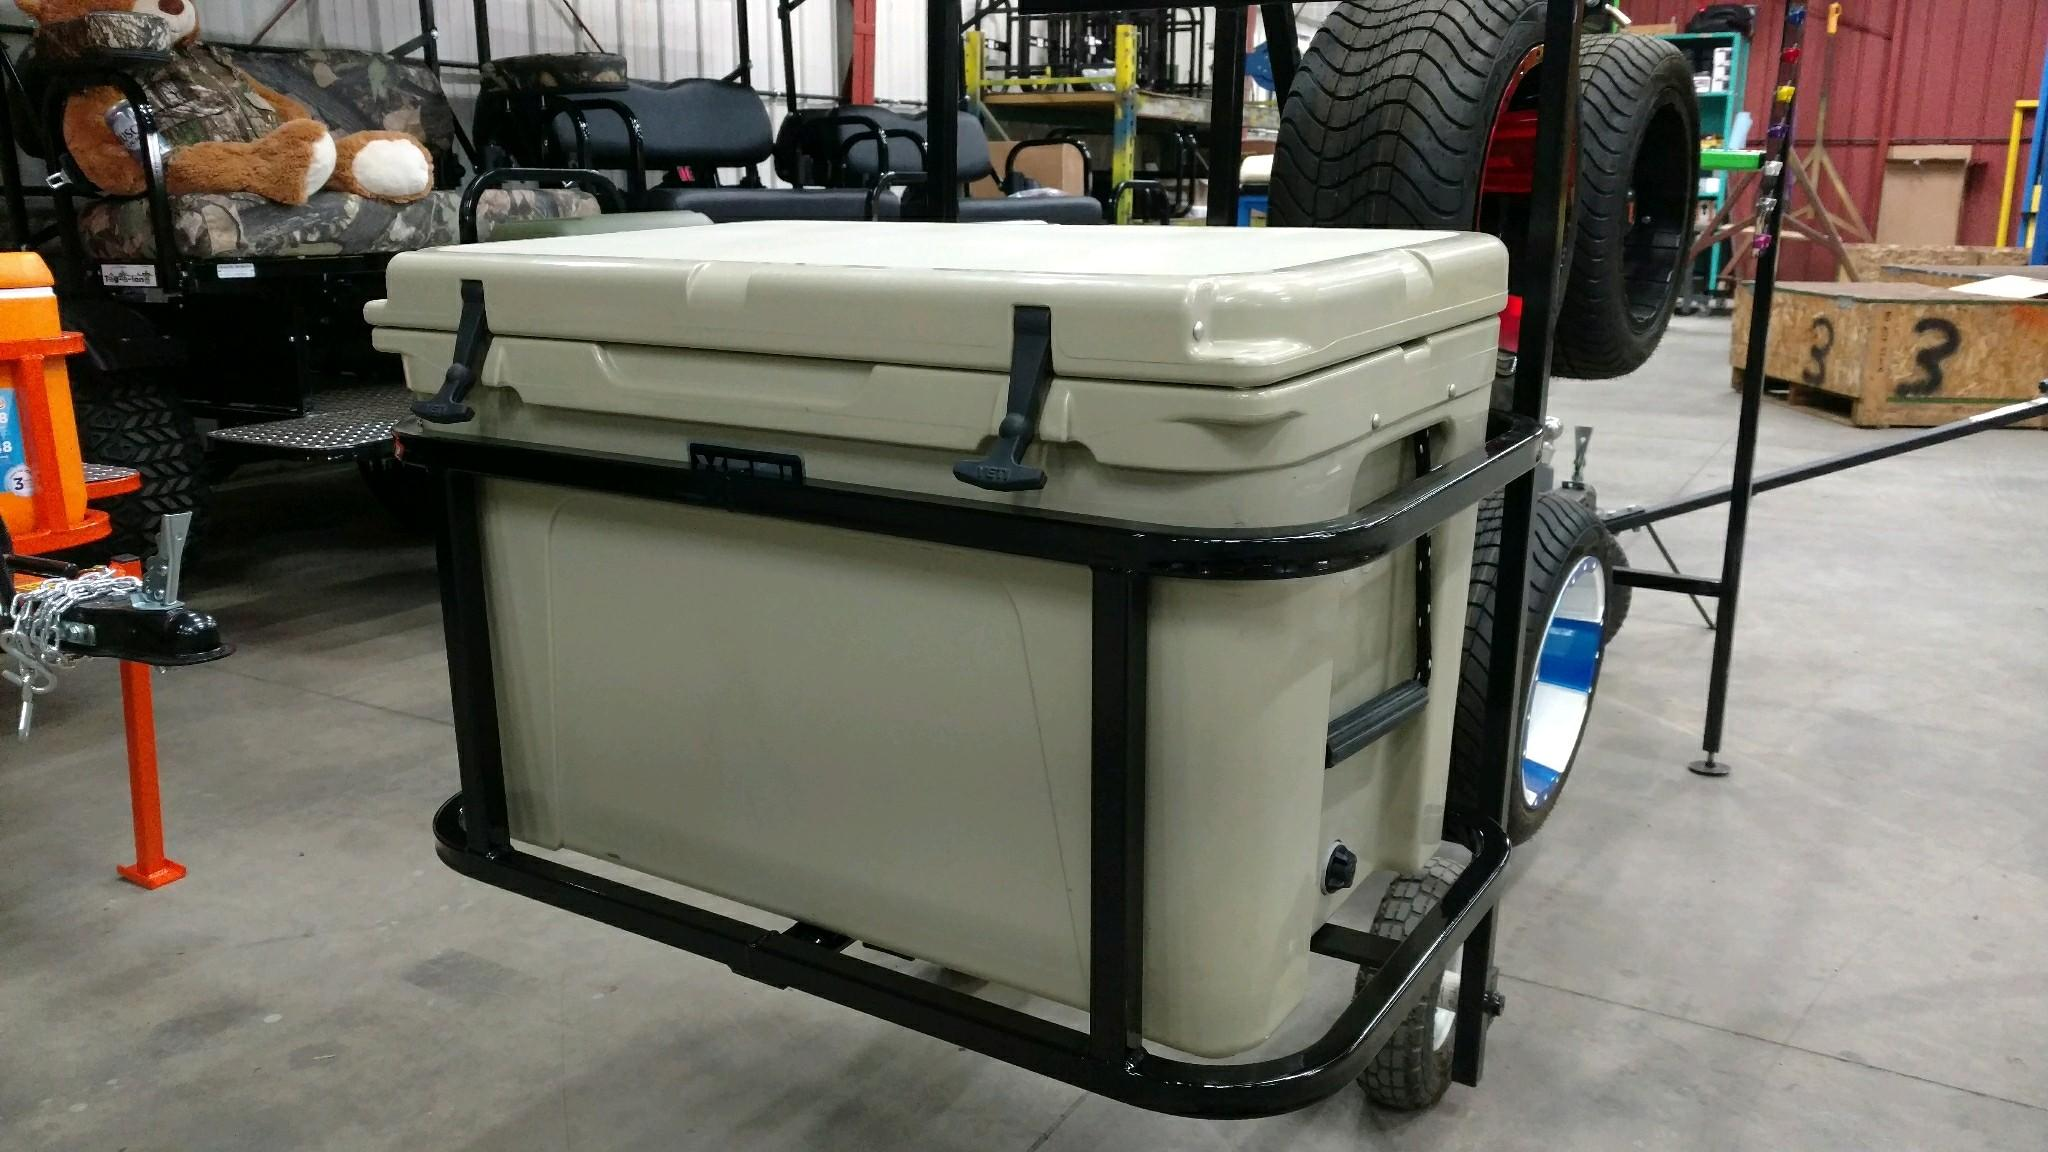 Yeti Tundra 105 Hitch Cooler Carrier